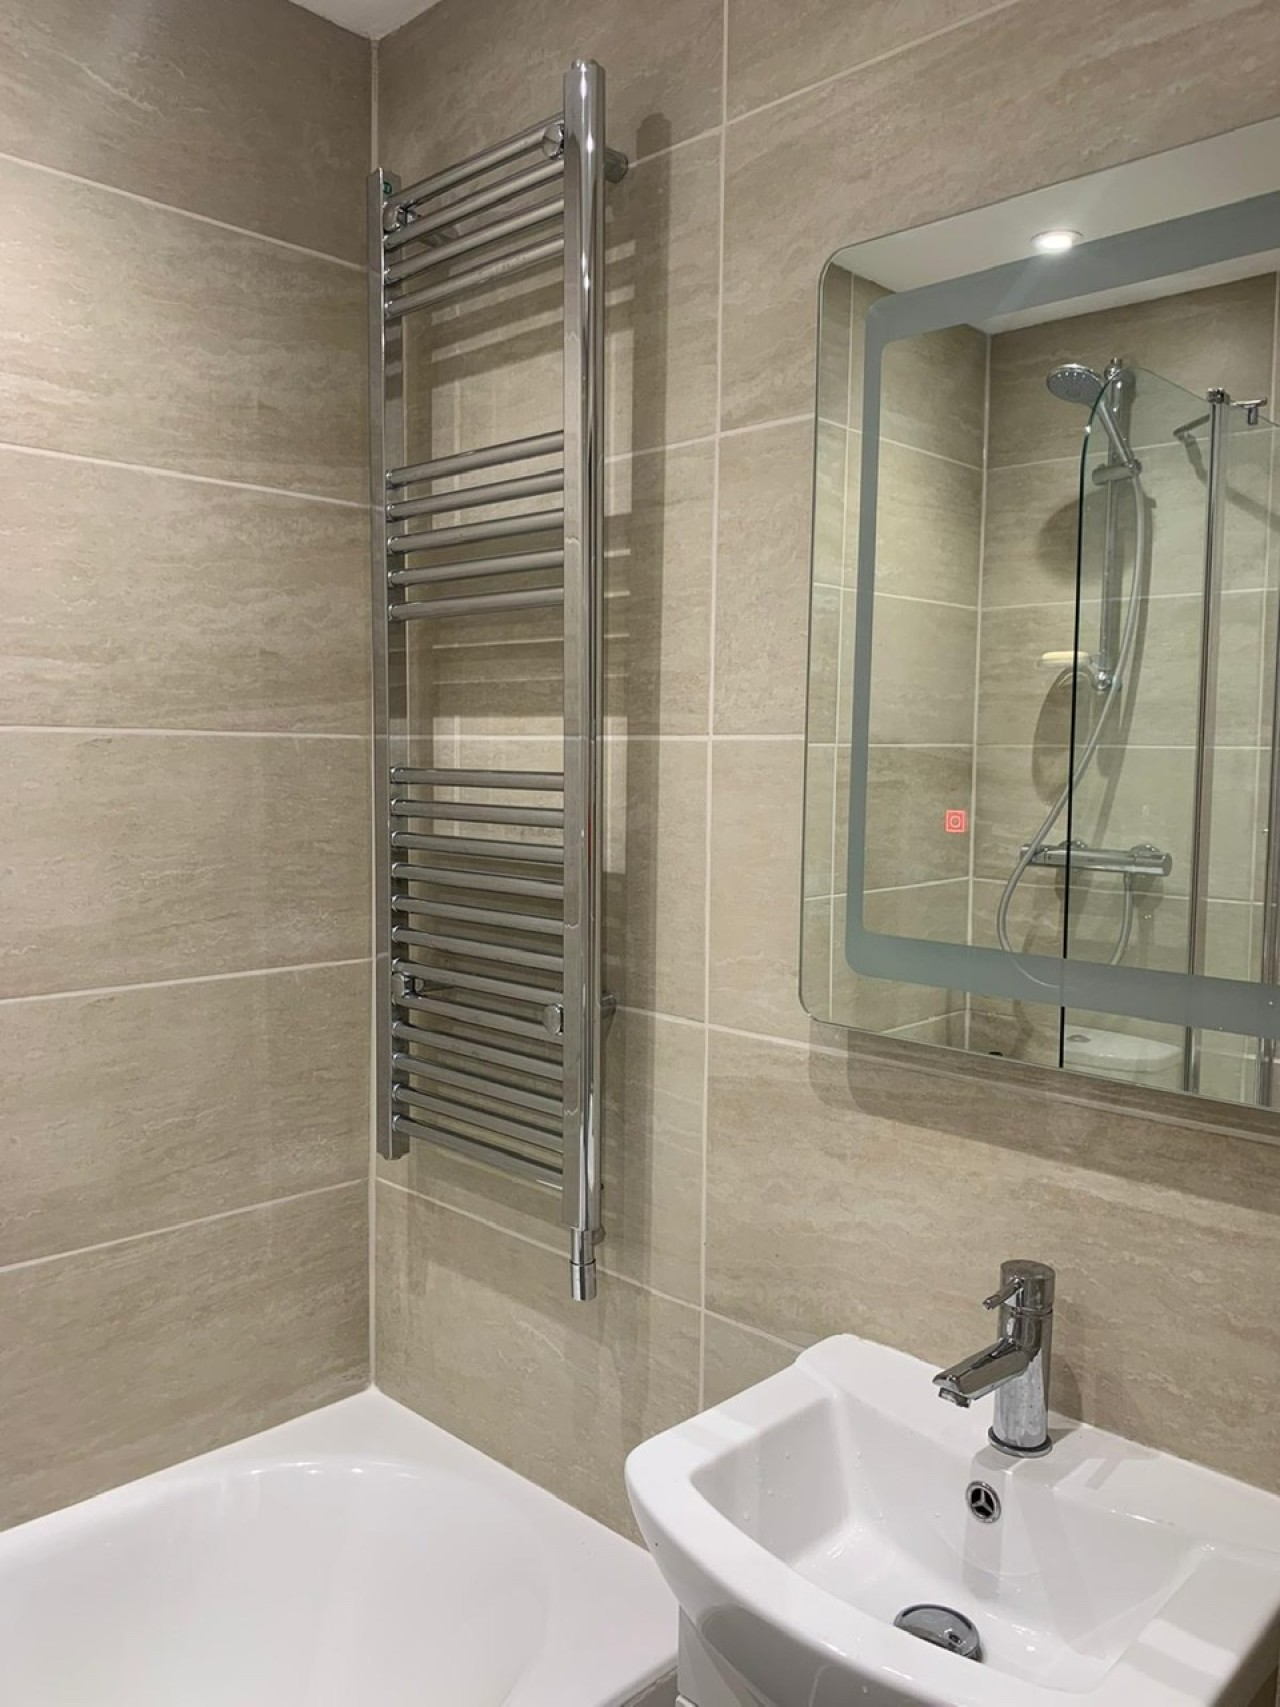 New en suite bathroom with bath and hand held shower and loo